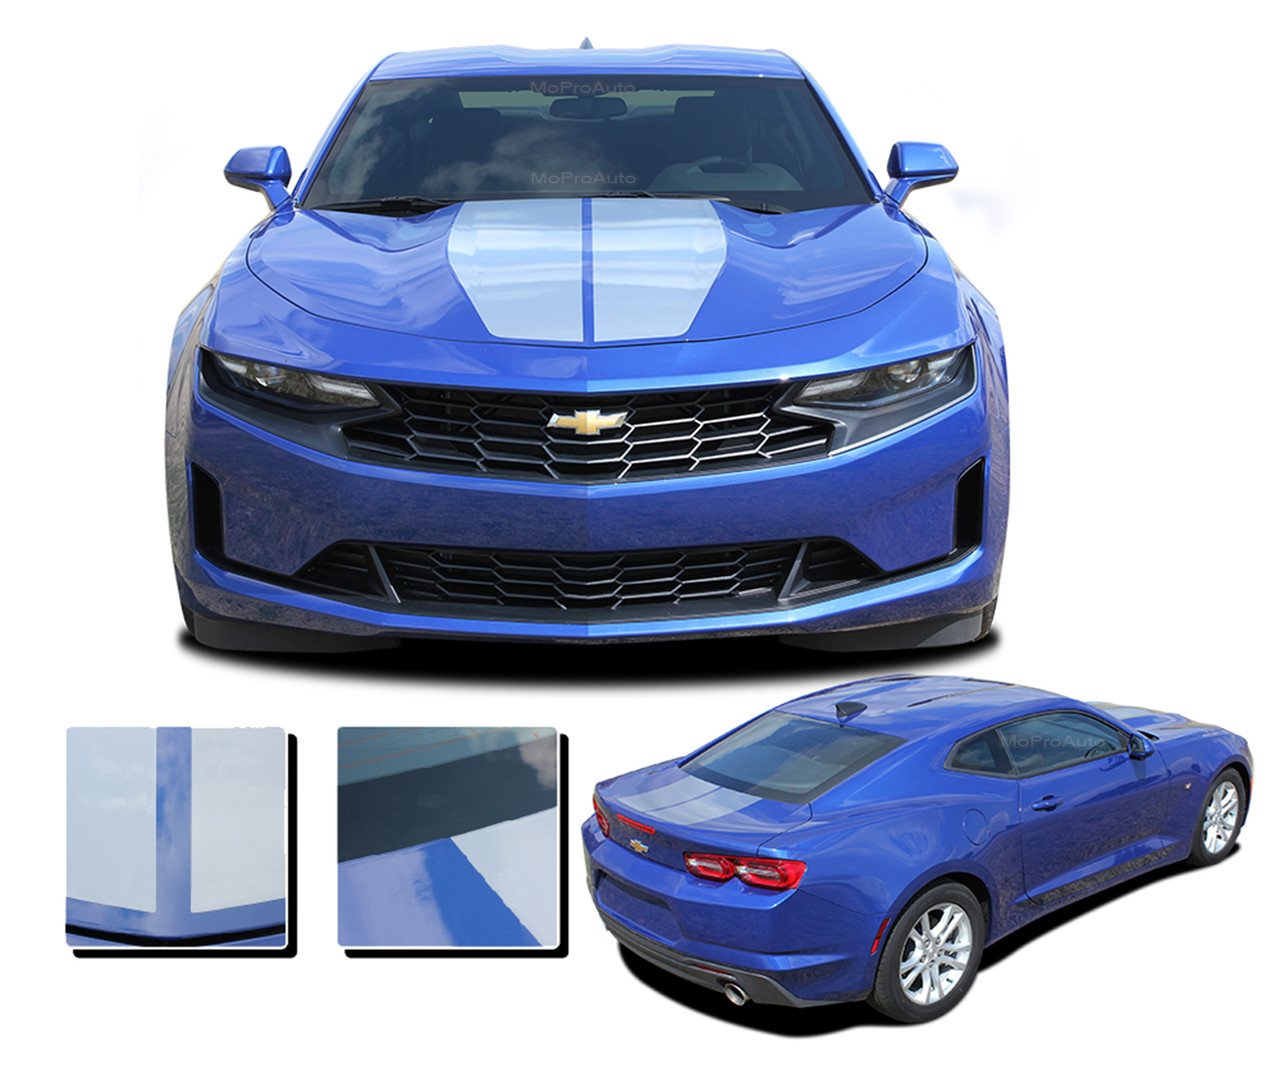 2019 2020 2021 Camaro Racing Stripes Rev Sport Chevy Camaro Hood Decals Rally Vinyl Graphics Kit Moproauto Professional Vinyl Graphics And Striping